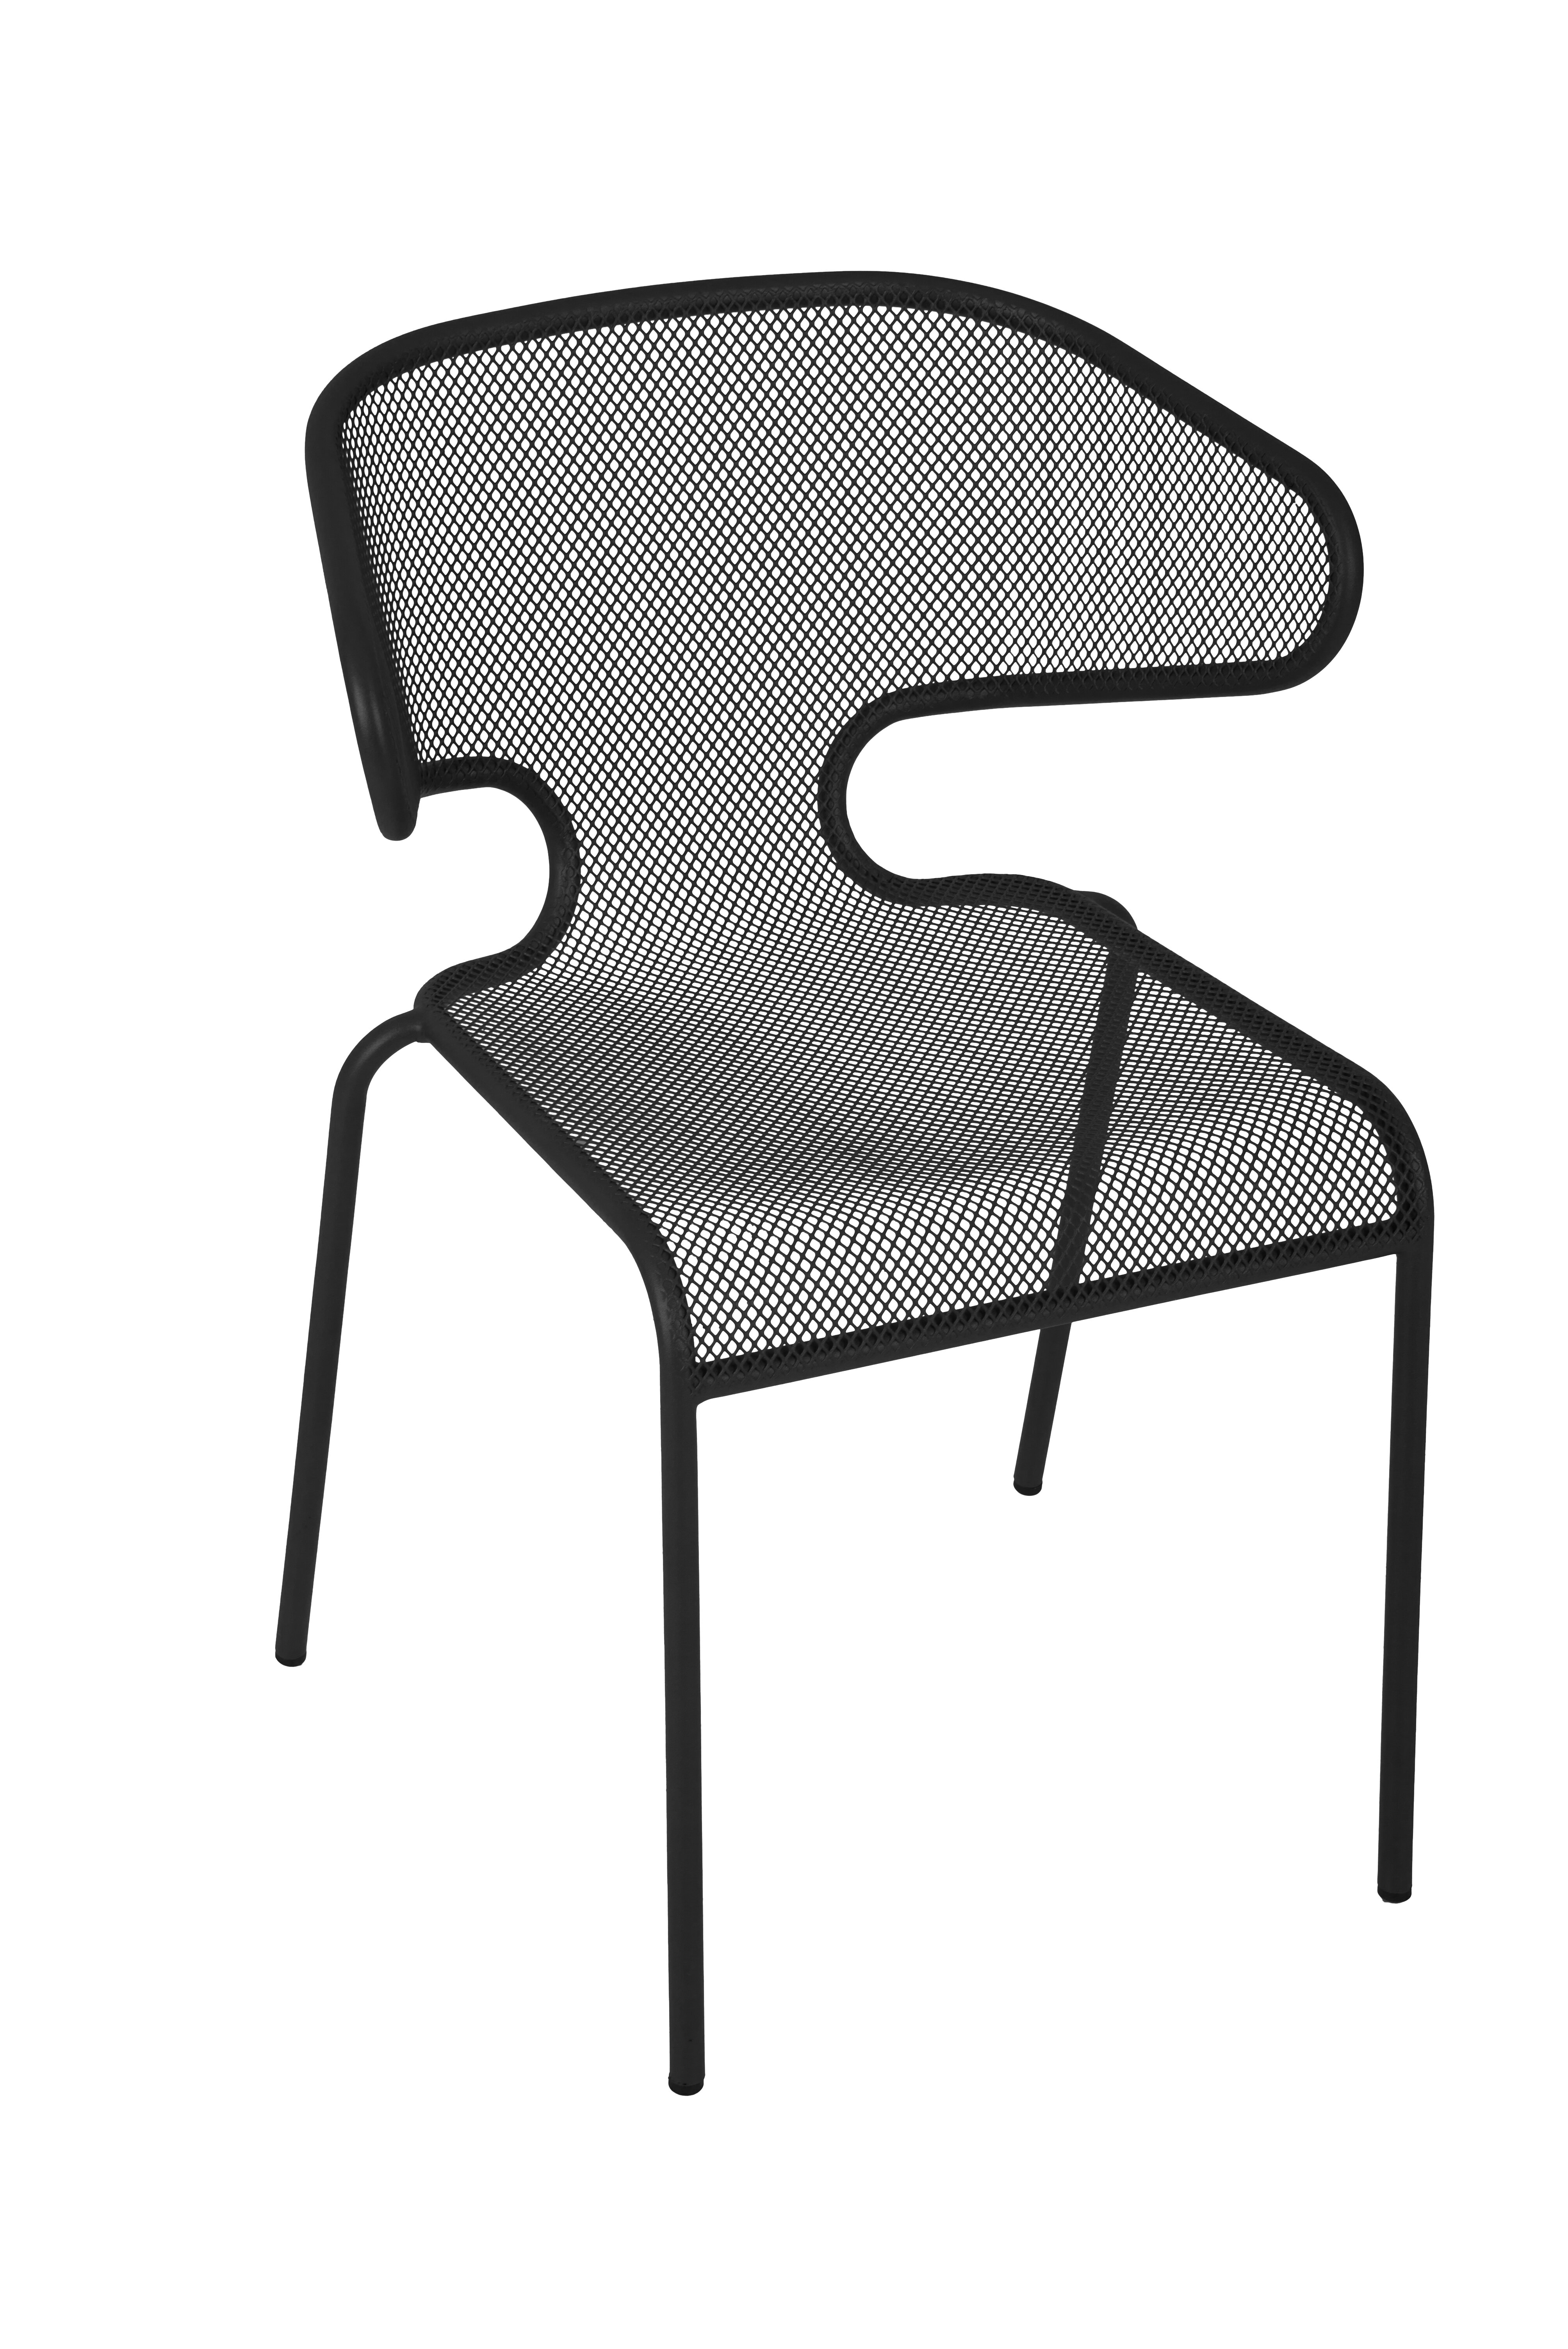 52c40c2701a4 BFMSEATING Maze Stacking Patio Dining Chair